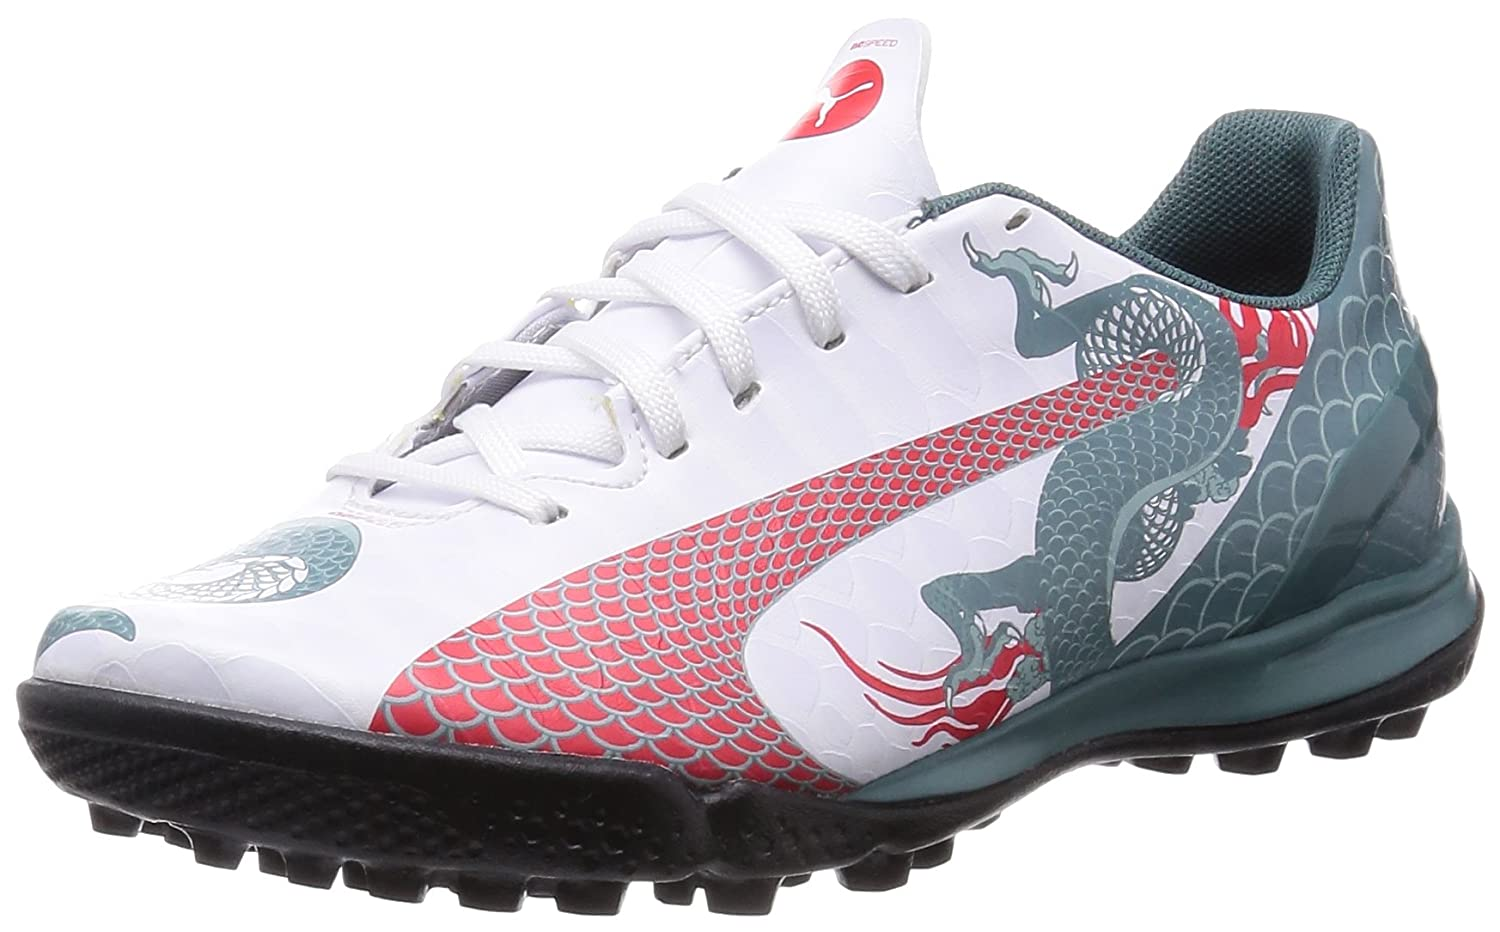 a4bd0d5bdf8a Puma evoSPEED 4.3 Graphic Astroturf Trainers - Kids White UK 5   Amazon.co.uk  Shoes   Bags